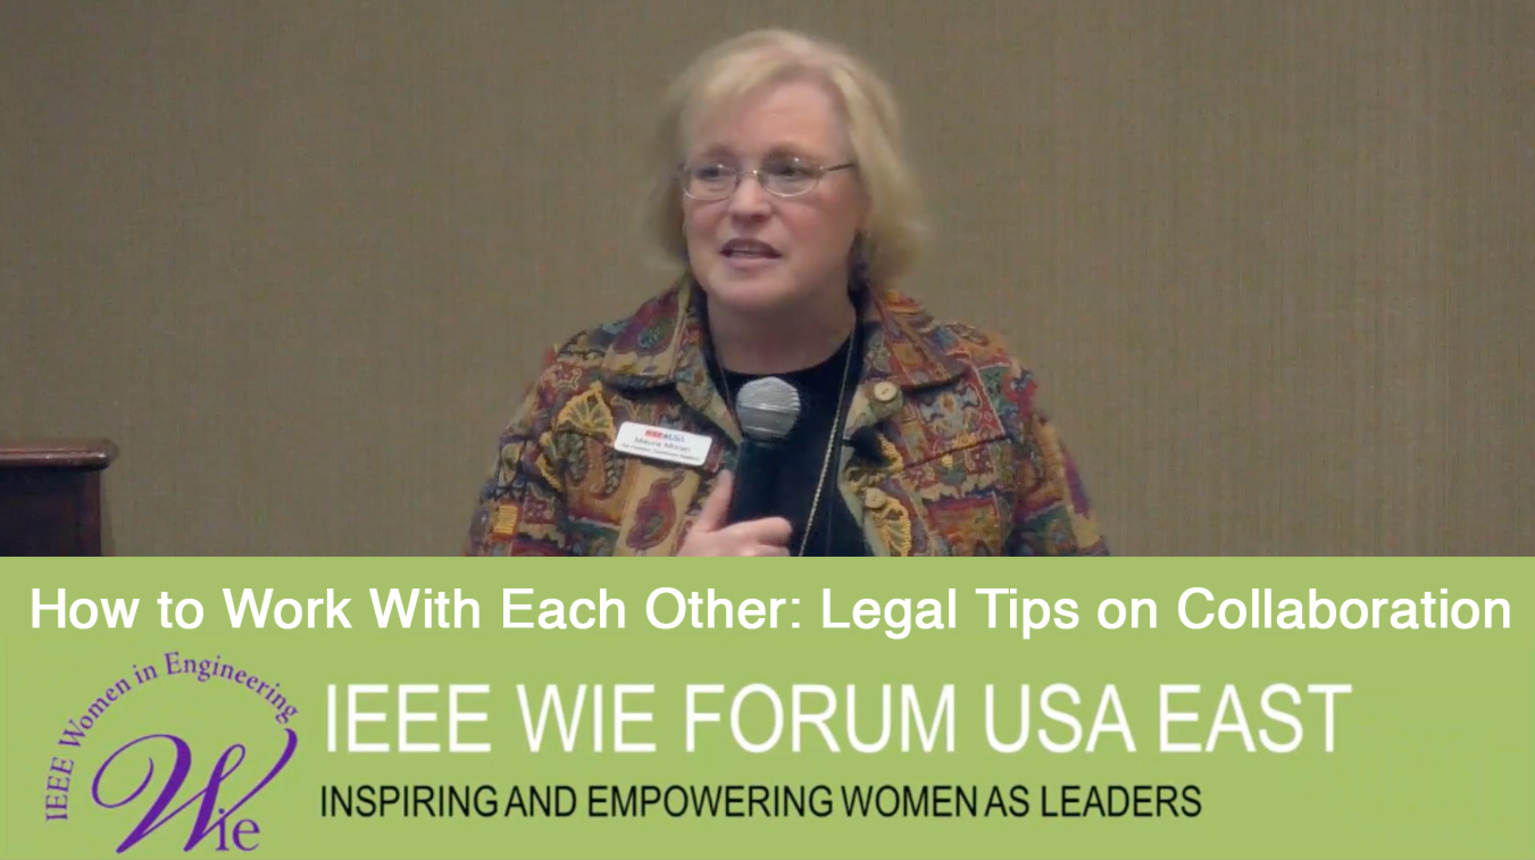 How to Work With Each Other: Legal Tips on Collaboration - Maura Moran from IEEE WIE Forum USA East 2017